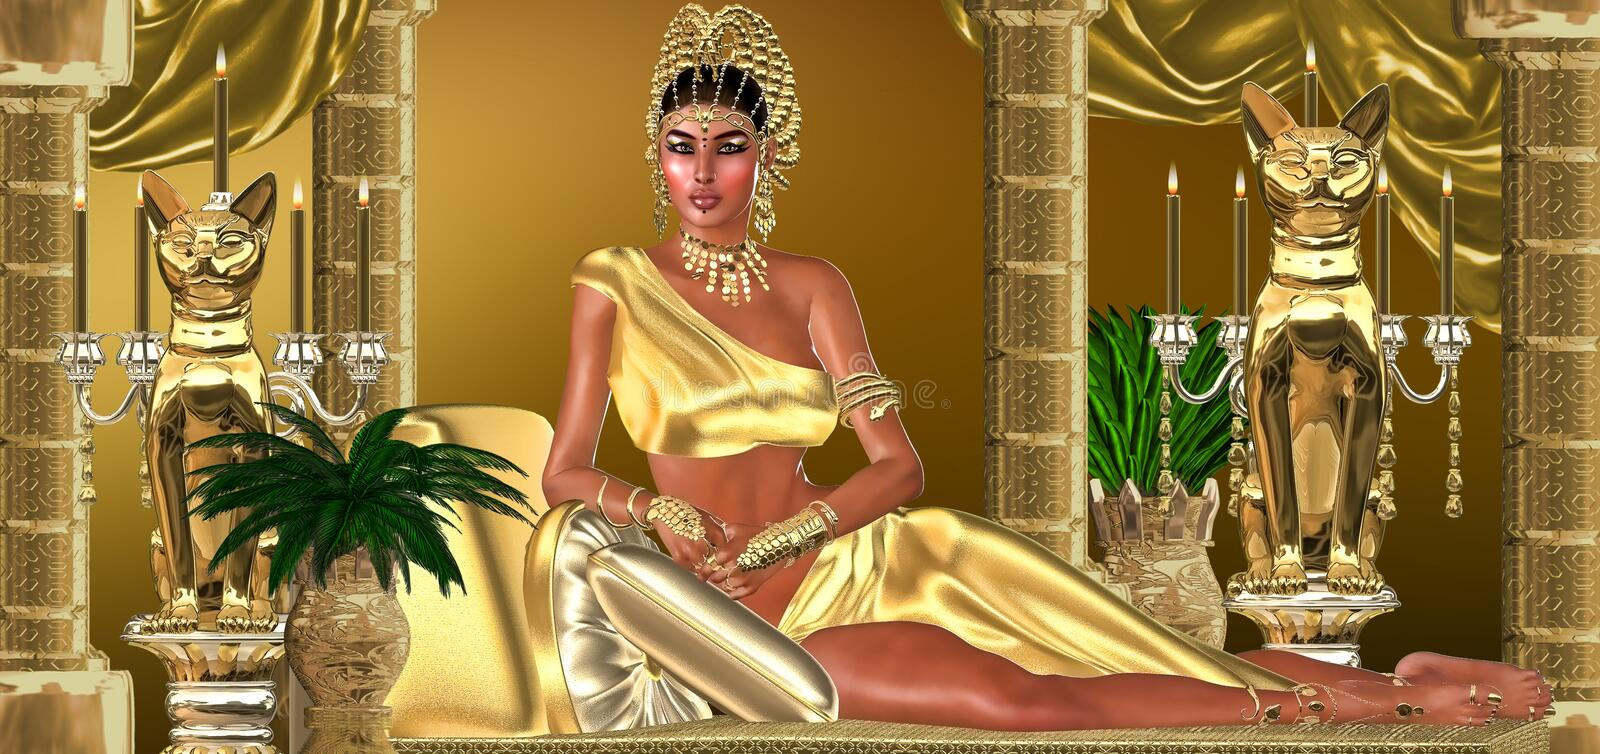 Roman Empress illustration libre de droits